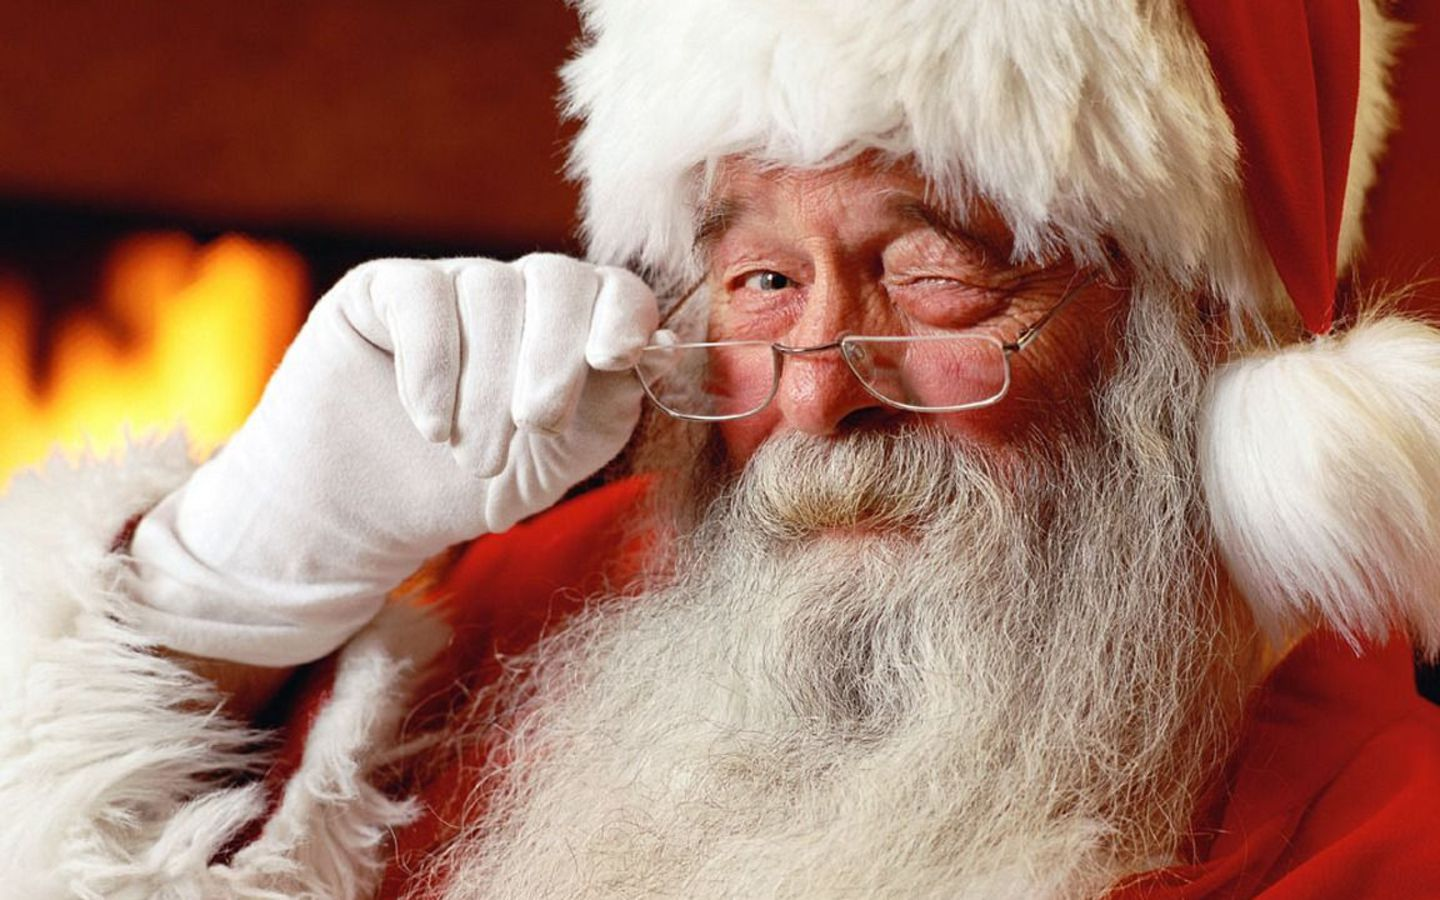 free adorable old santa claus picture wallpaper_1440x900_88114 - Free Santa Claus Pictures